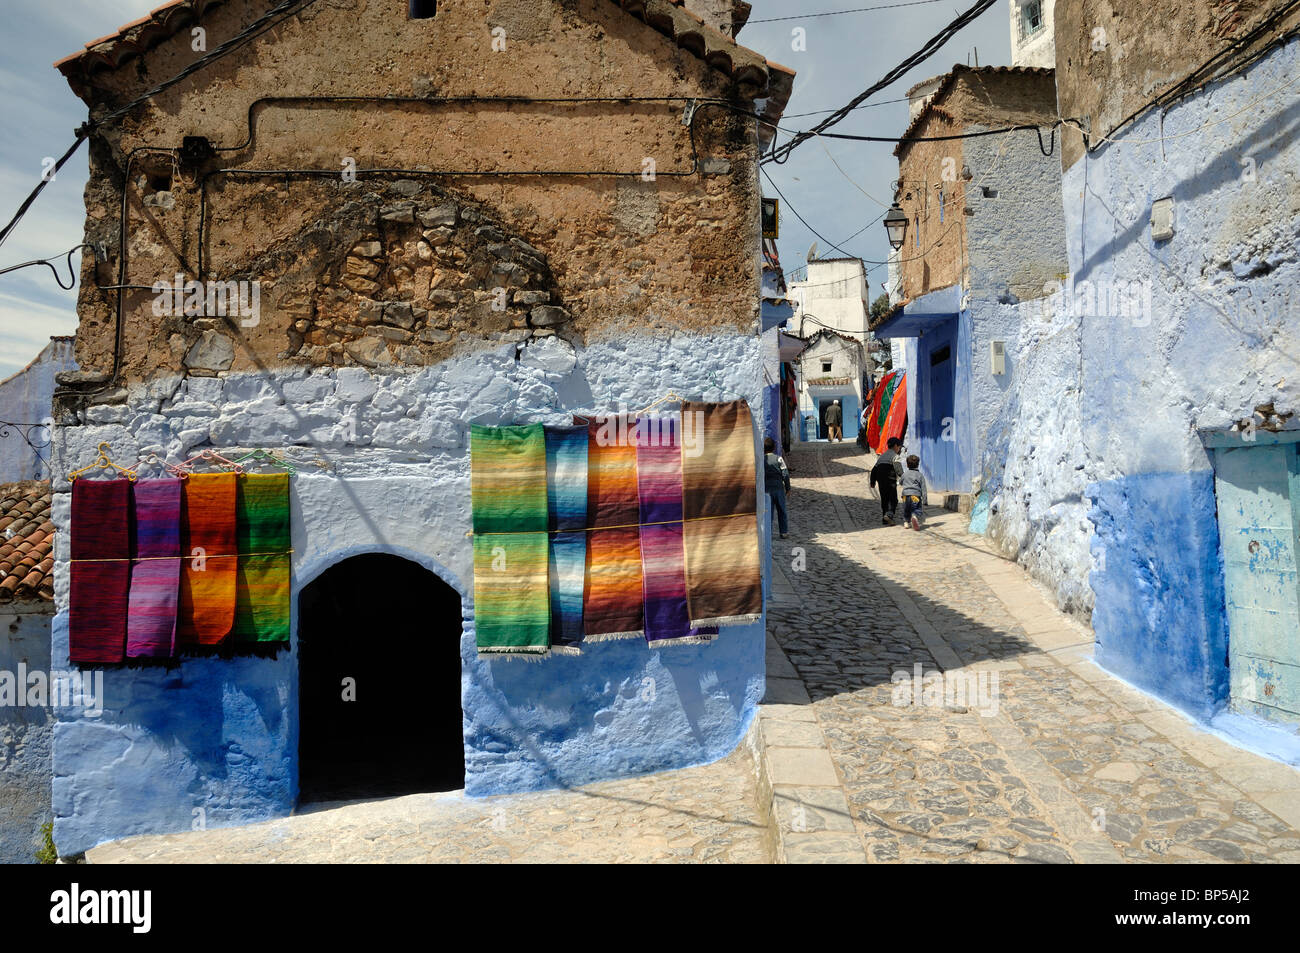 Street Scene in Chefchaouen with Display of Moroccan Carpets for Sale Hanging on Walls, & Blue Houses, Morocco - Stock Image